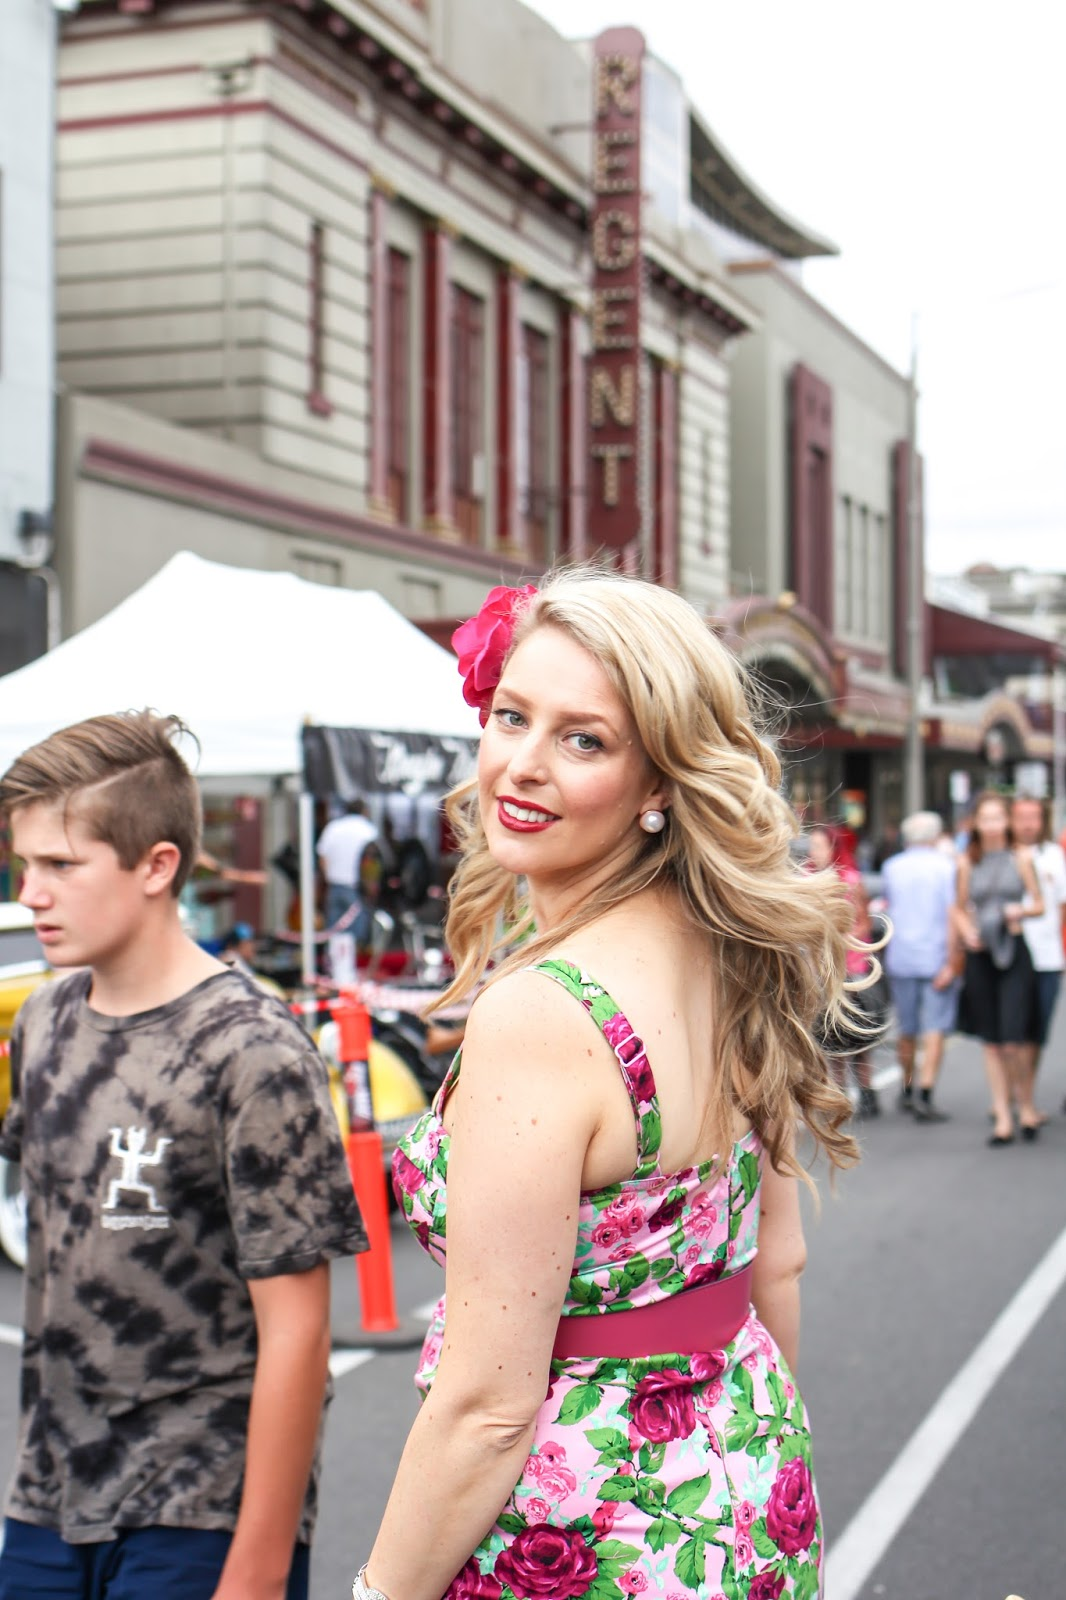 Goldfields Girl at Ballarat Beat Rockabilly Festival. Visit the Goldfields Girl blog for more fashion and lifestyle inspiration